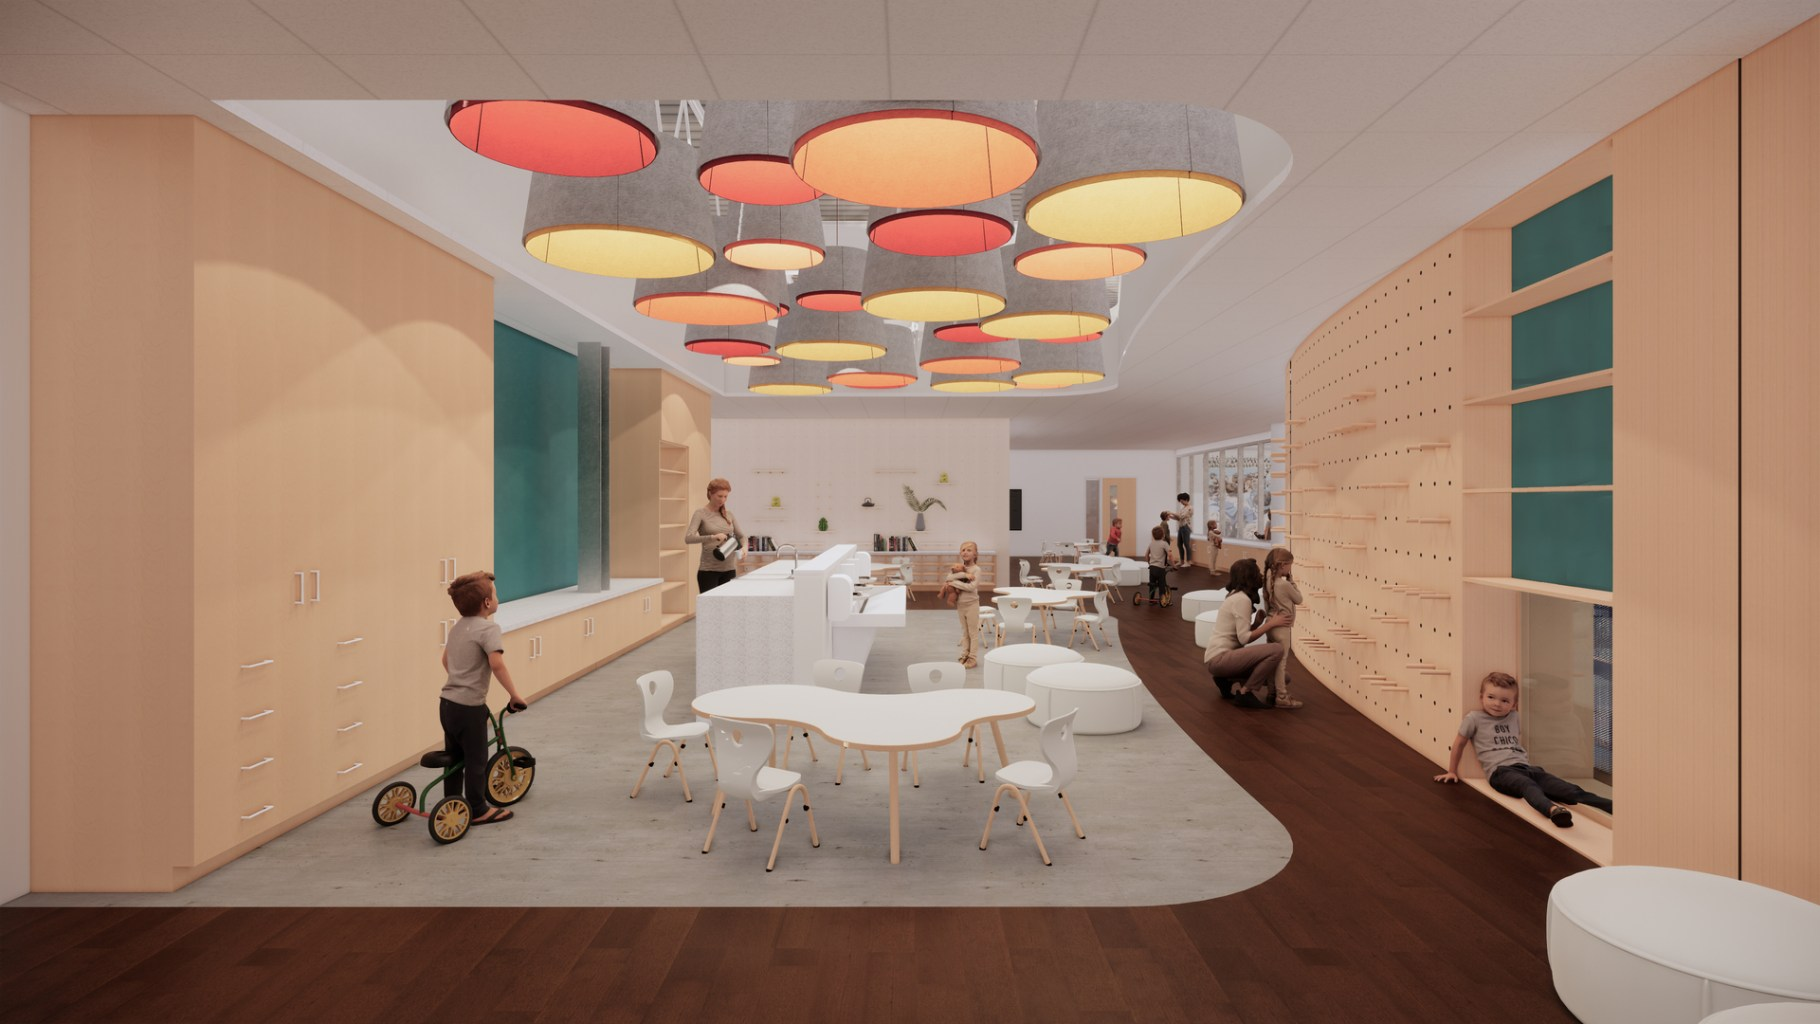 Rendering of a classroom interior with modern furniture and lighting, and a wall covered in pegs with a student and teacher are looking at